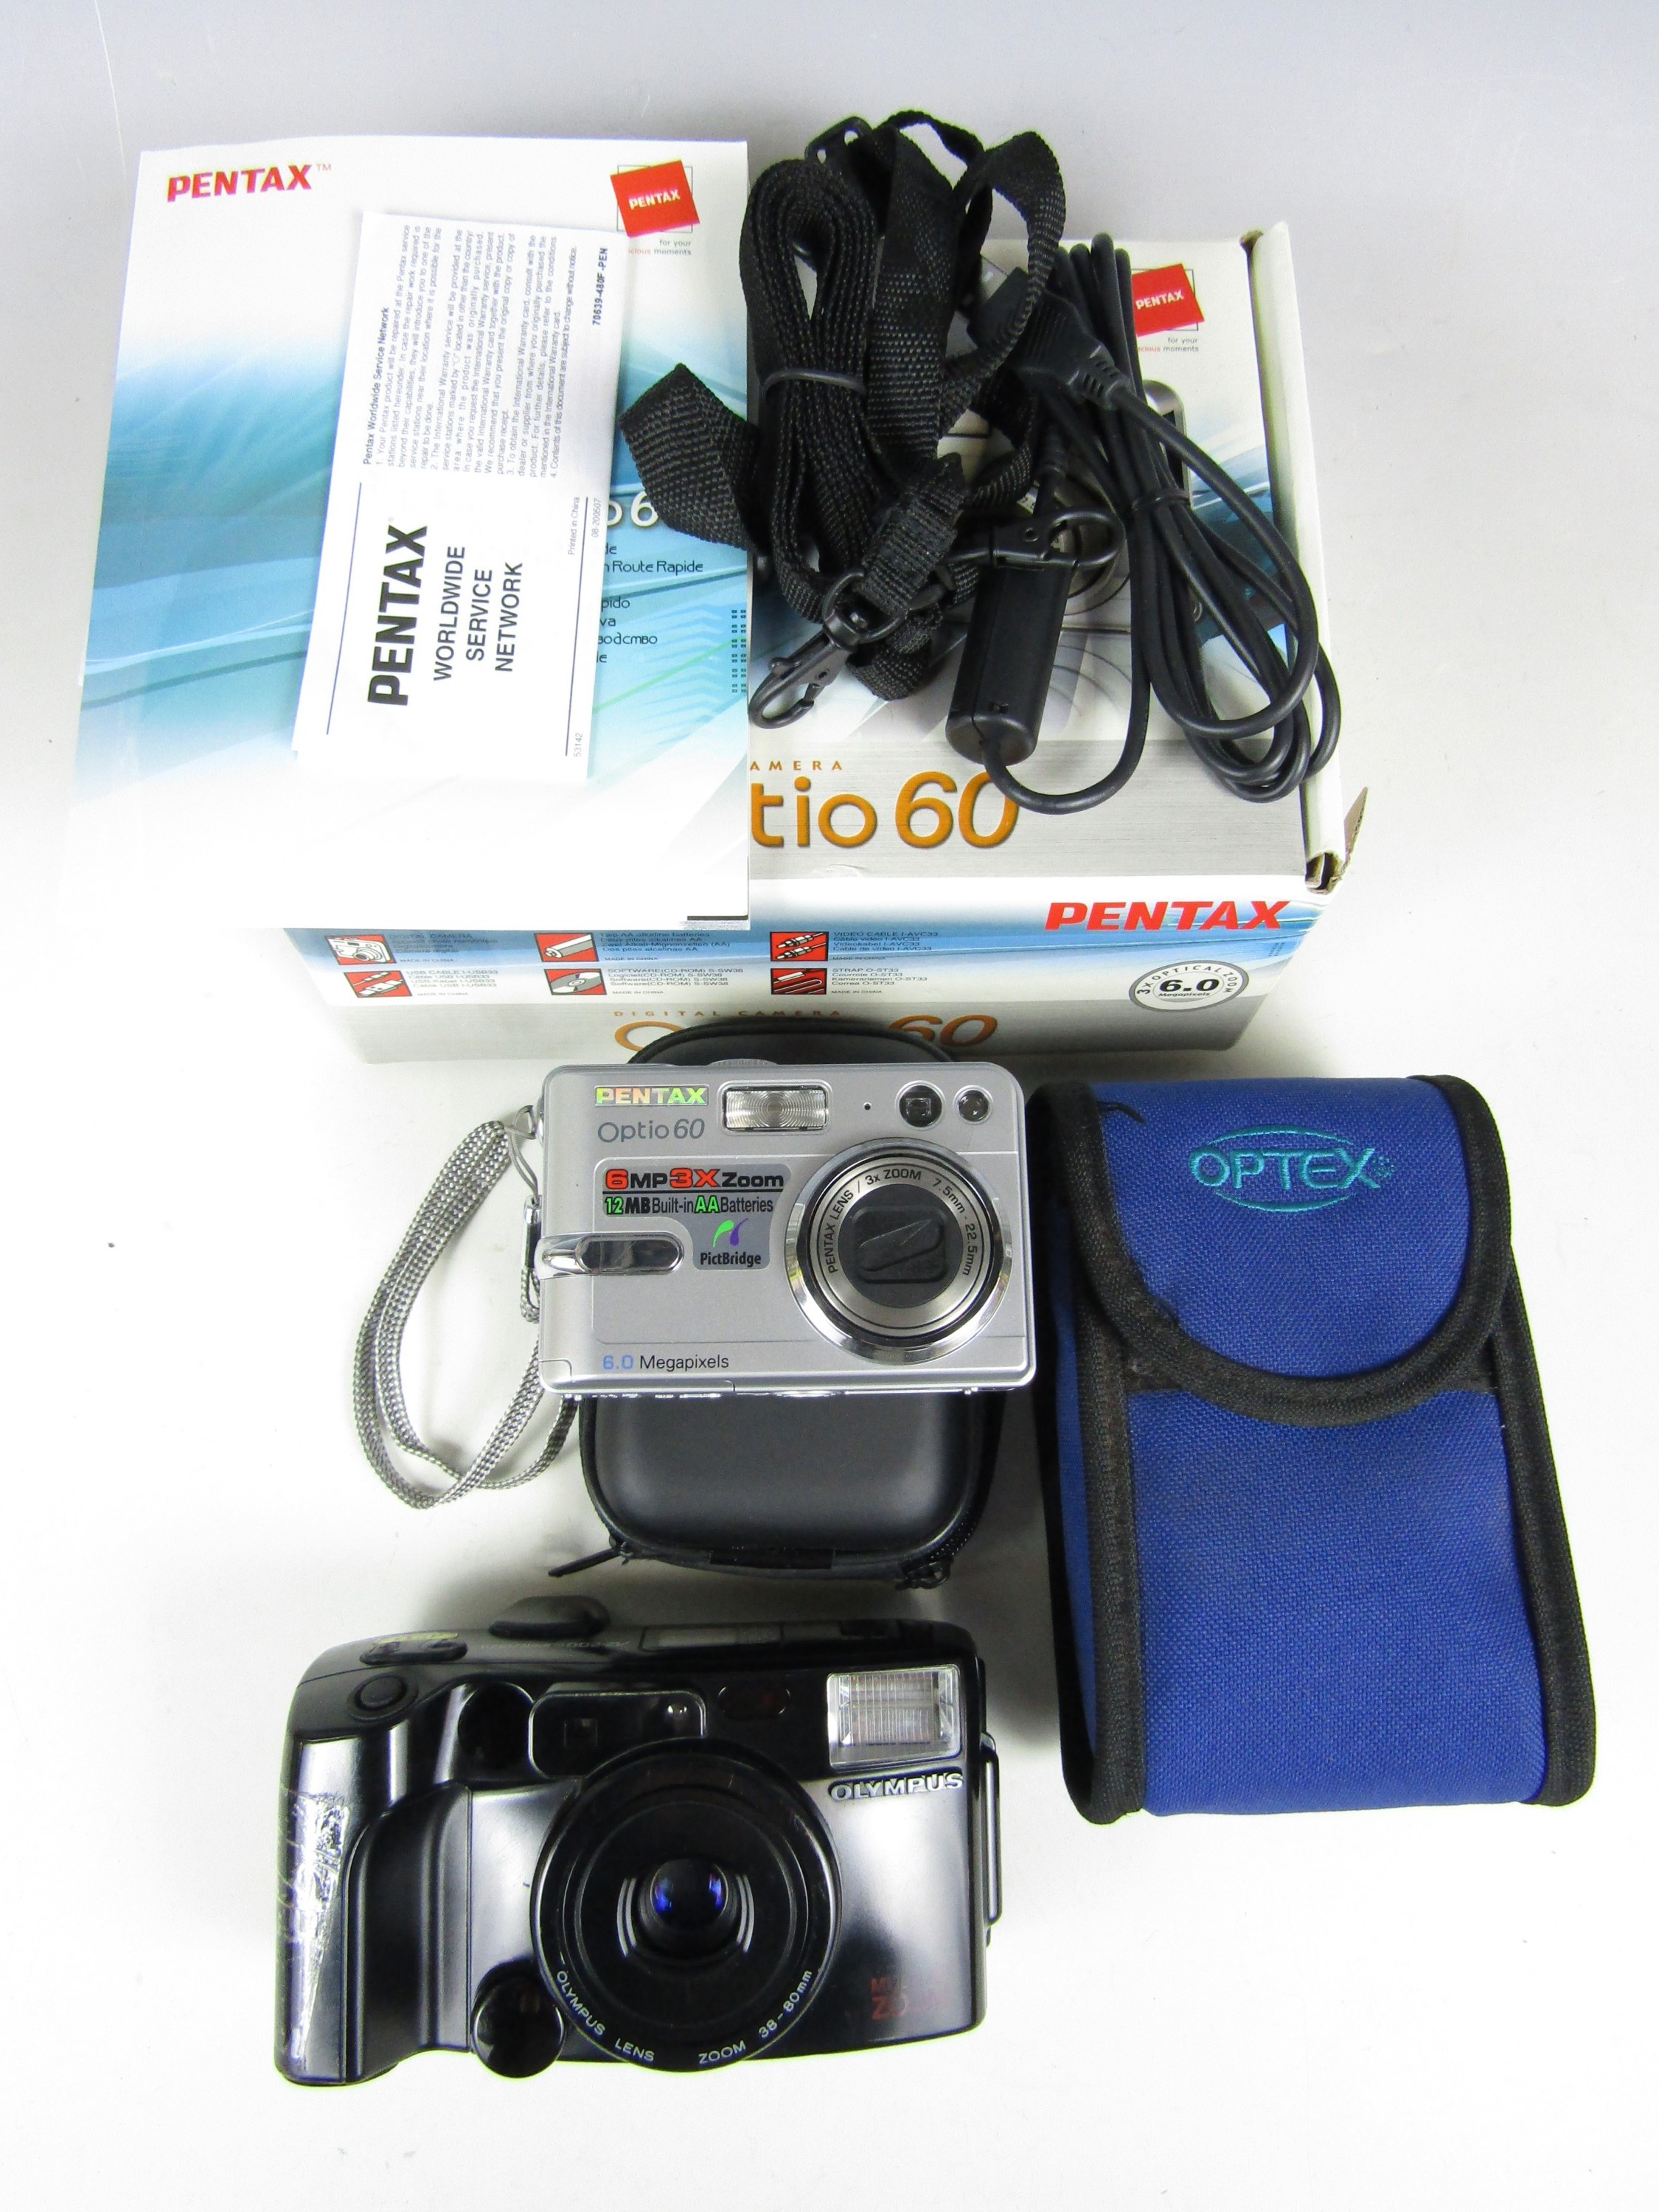 Lot 59 - A Pentax Optio 60 digital camera together with an Olympus multi zoom camera